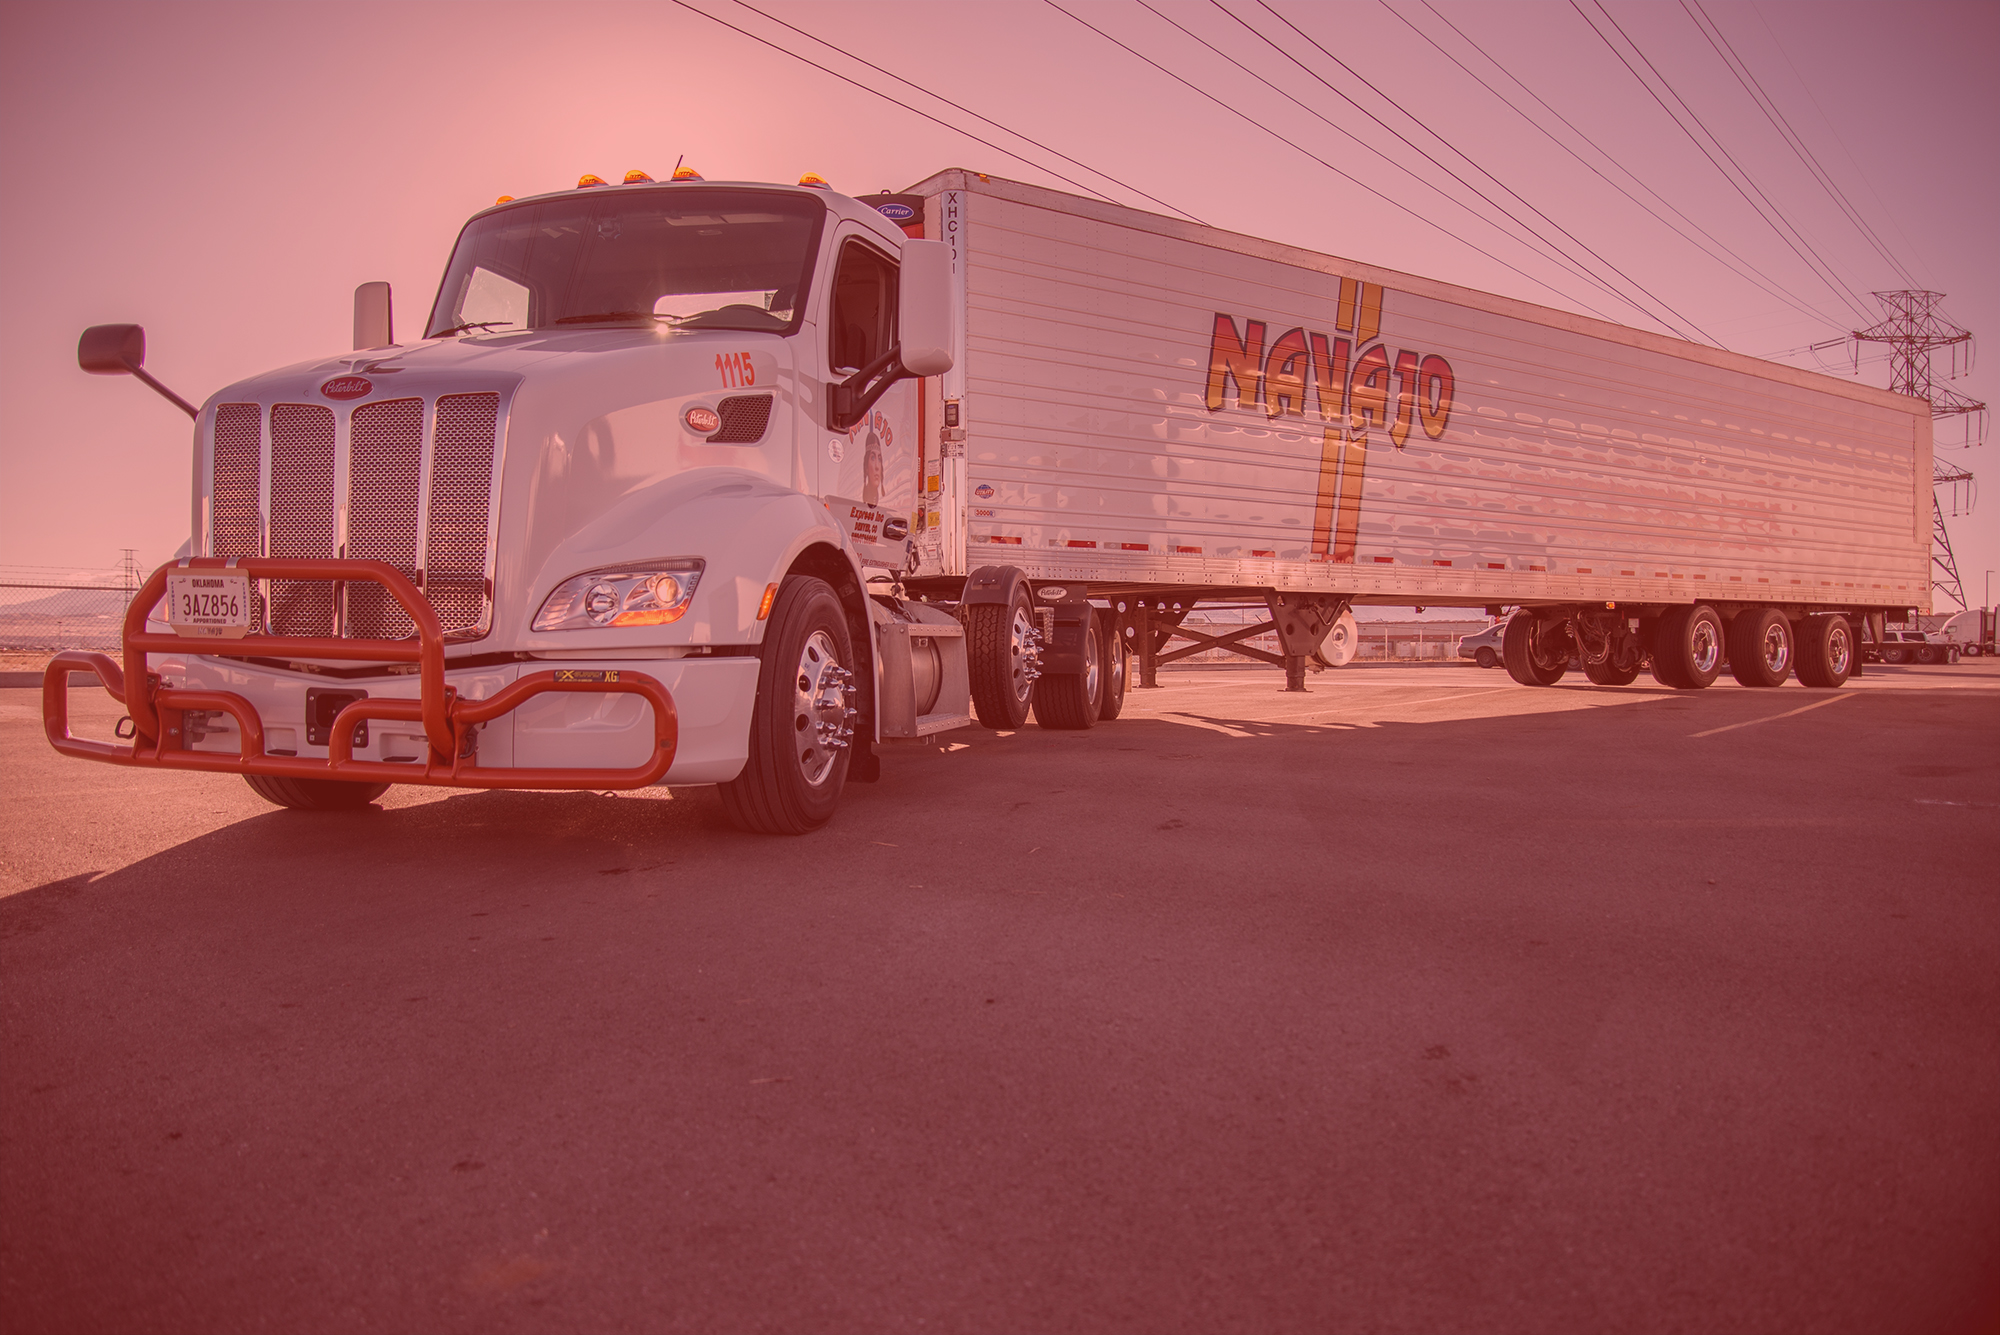 Navajo Express Heavy Haul Shipping Services And Truck Driving Careers